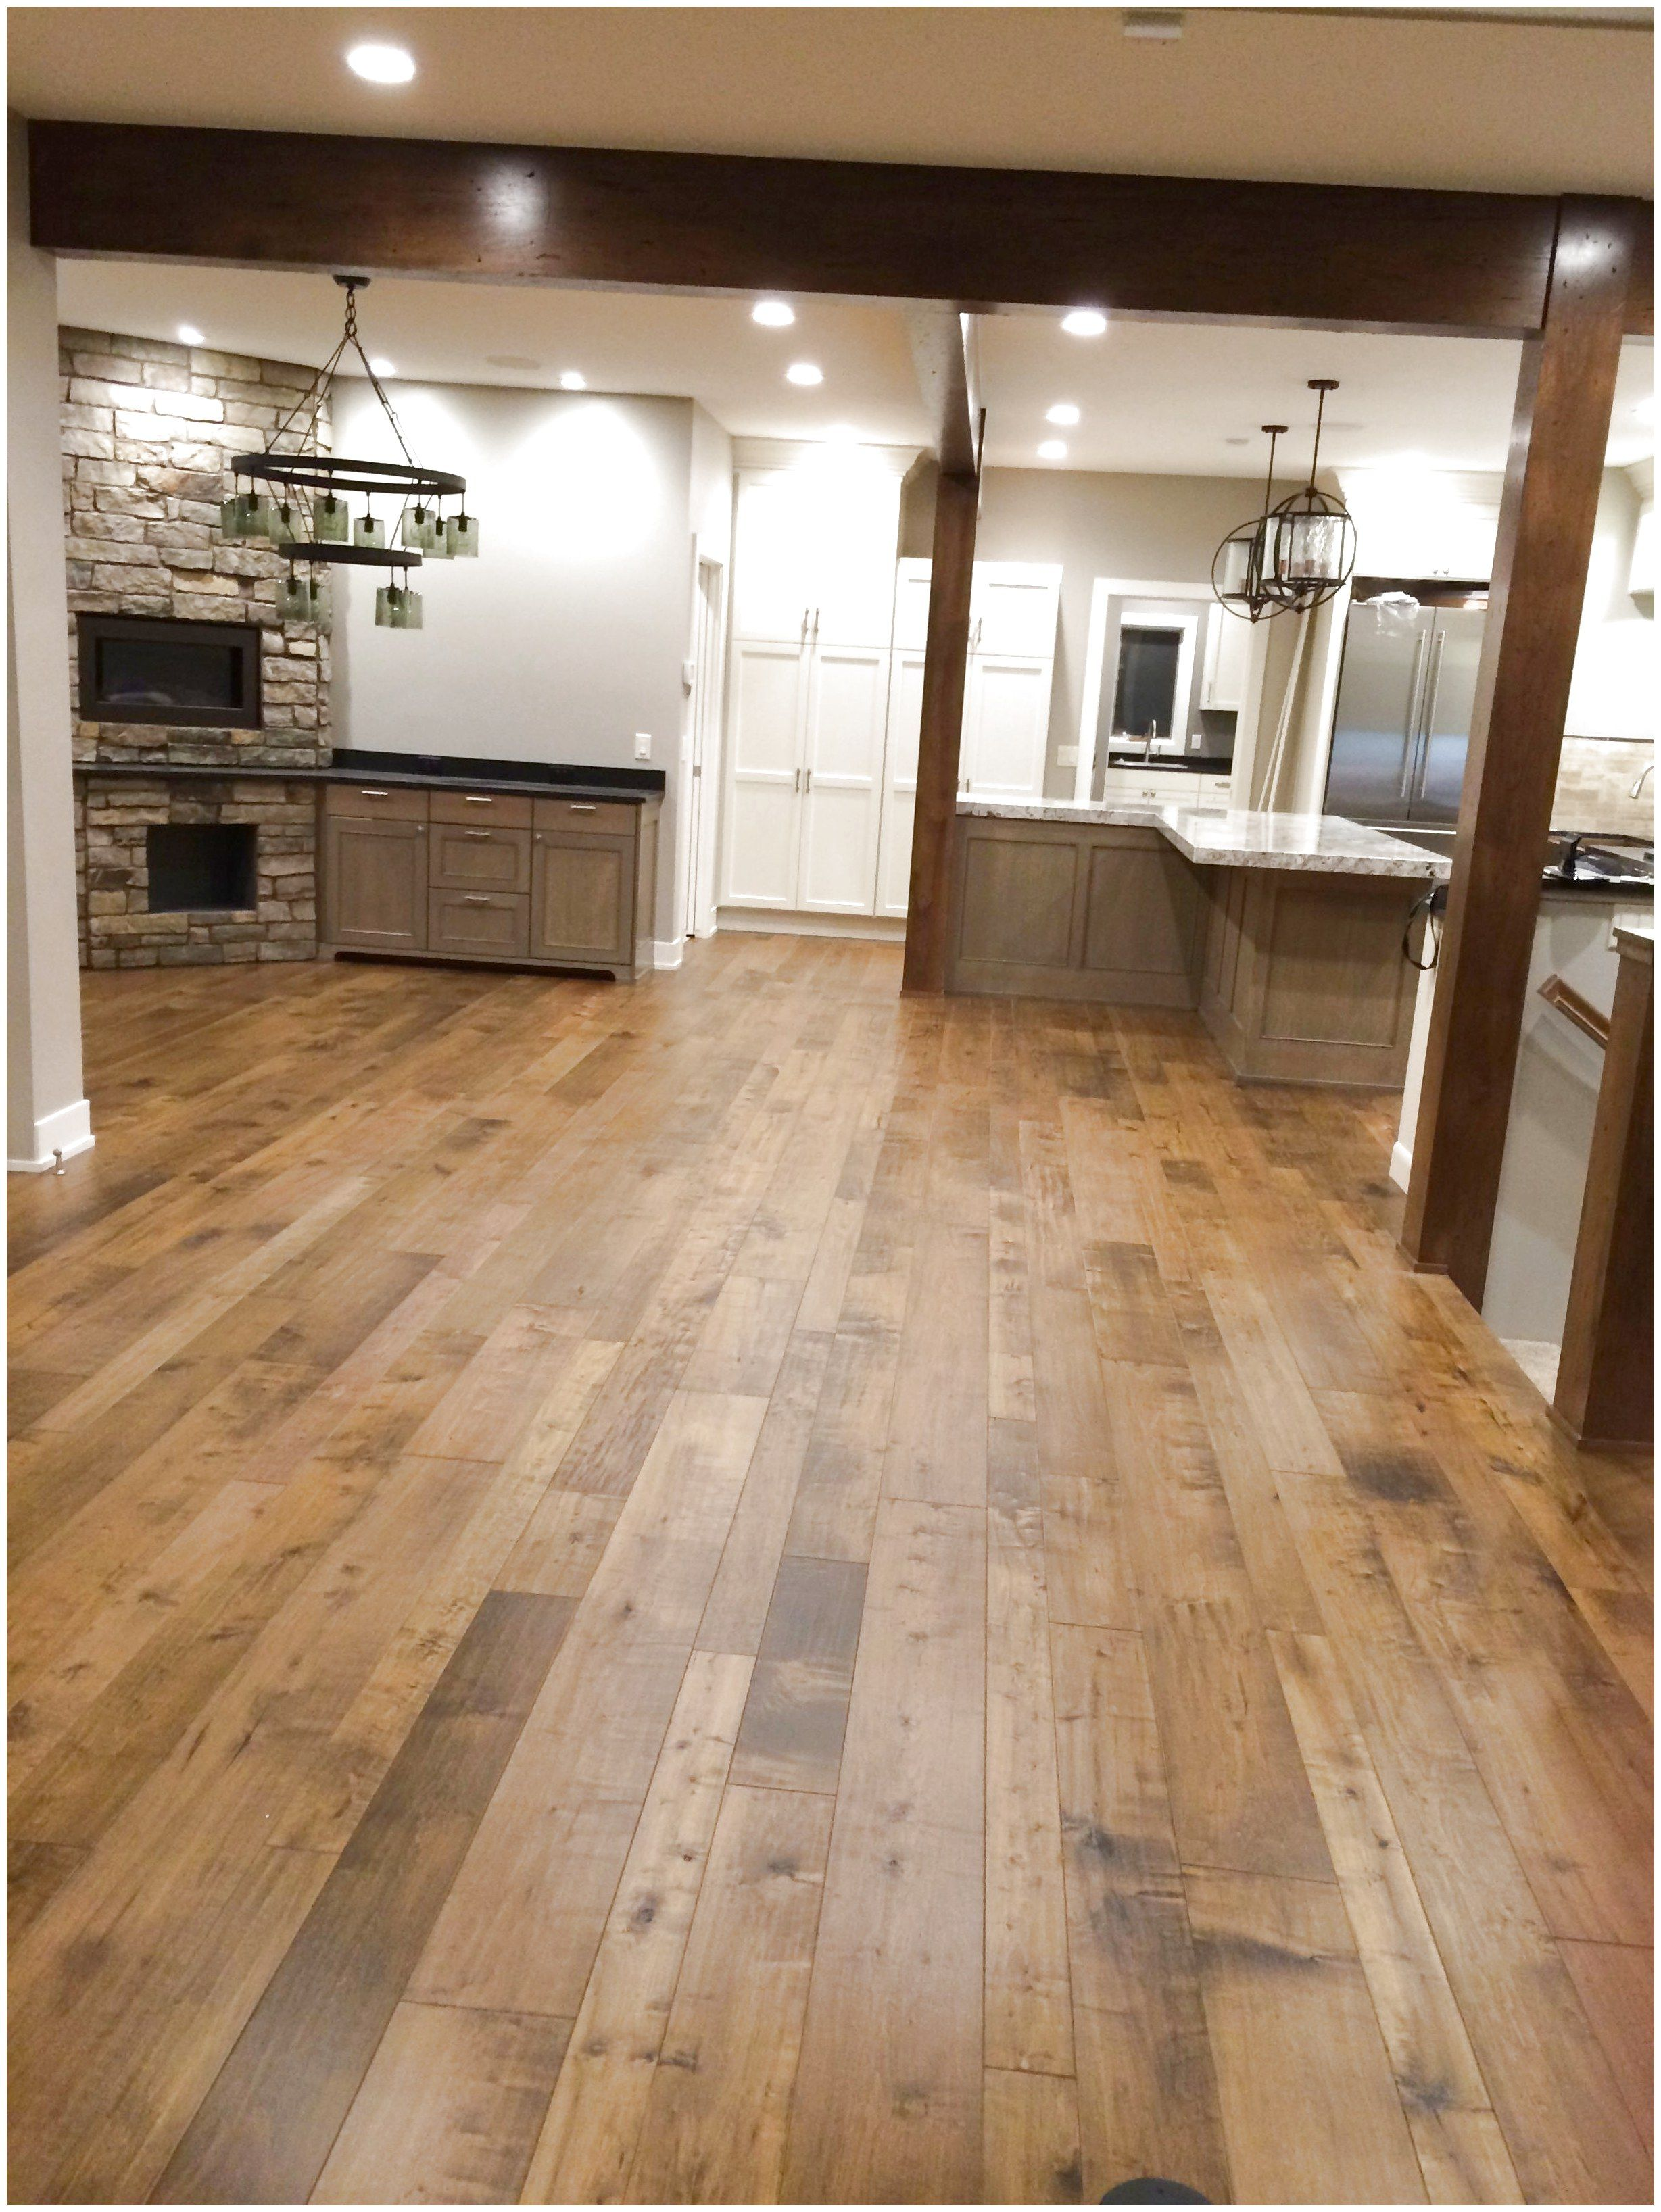 Monterey Cabana installation in Lincoln NE. The floors were purchased from Carpets Direct and installed by Fulton Construction. Engineered Hardwood Flooring ...